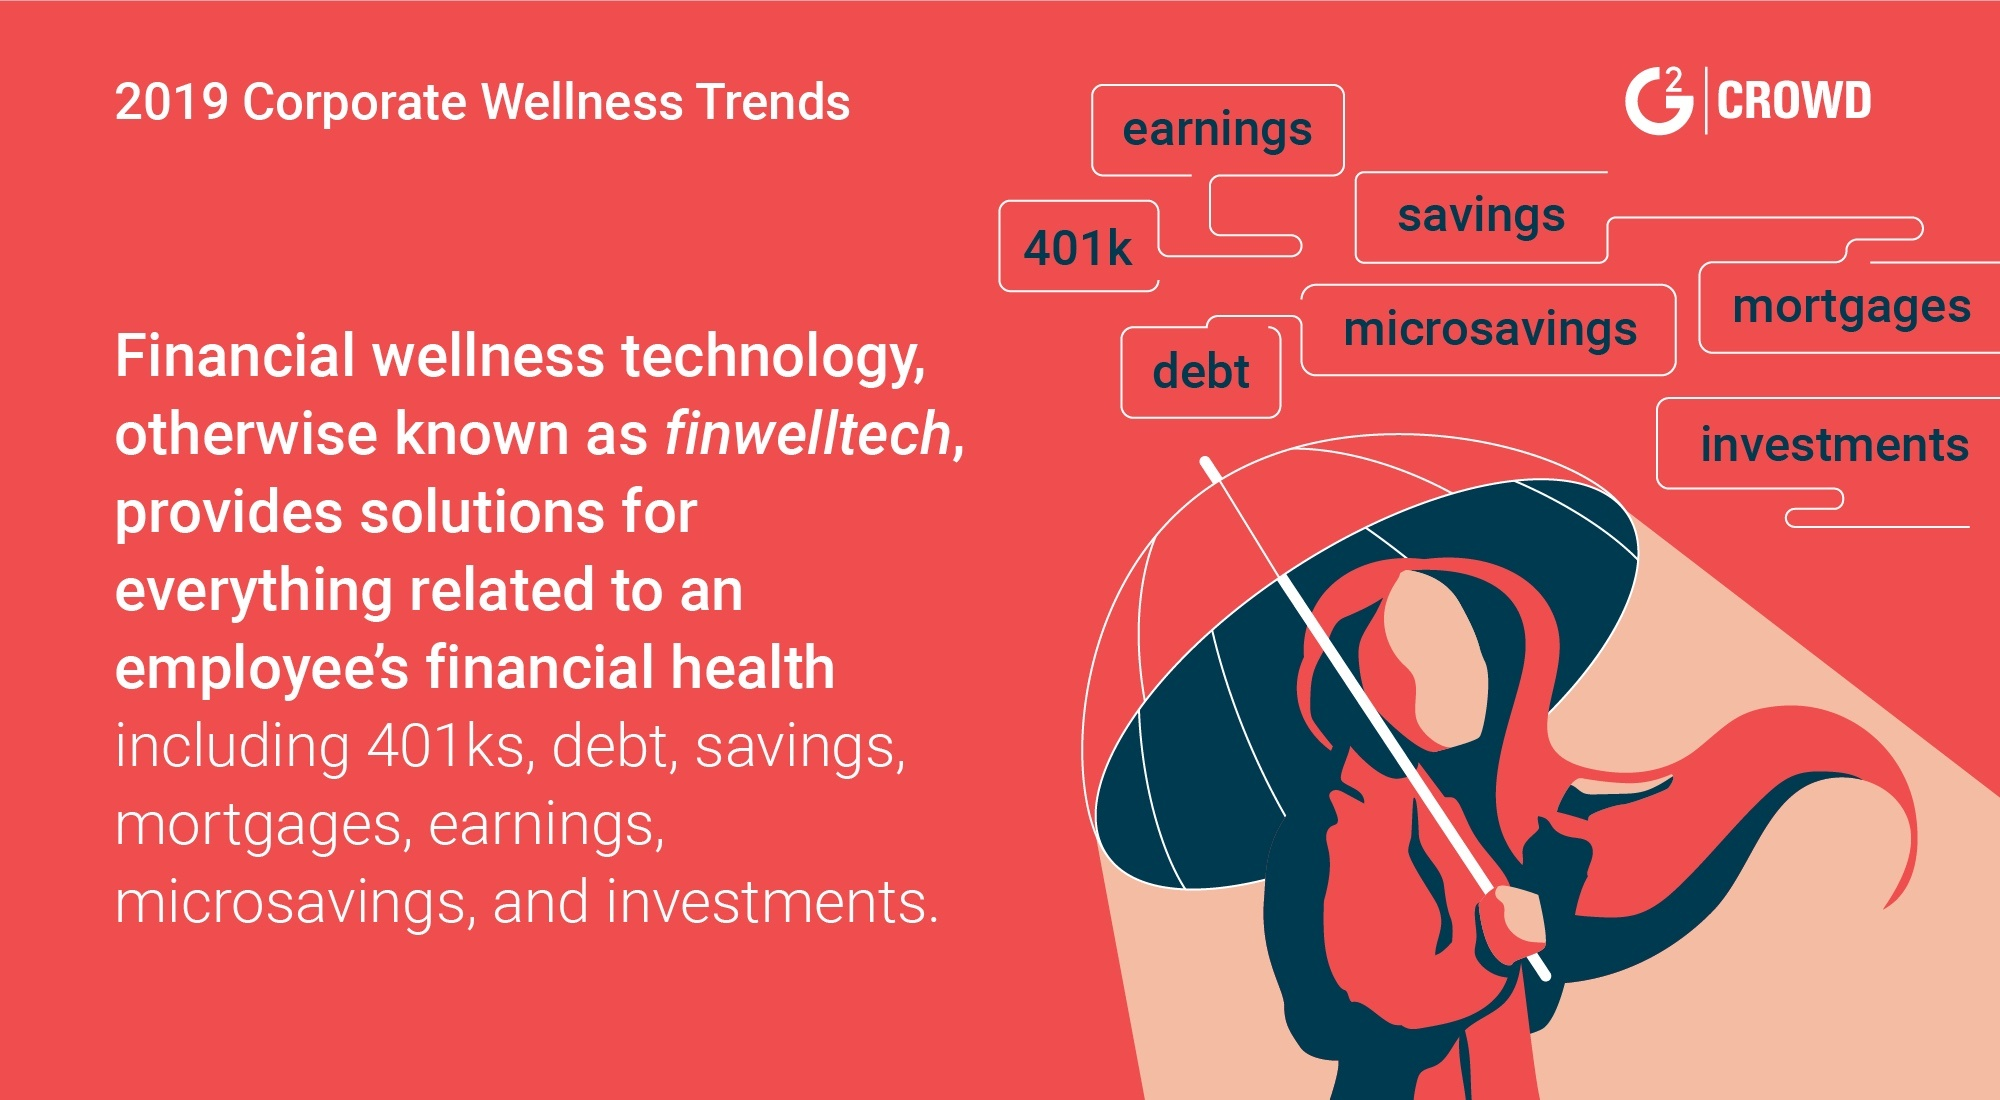 corporate-wellness-trends-for-2019